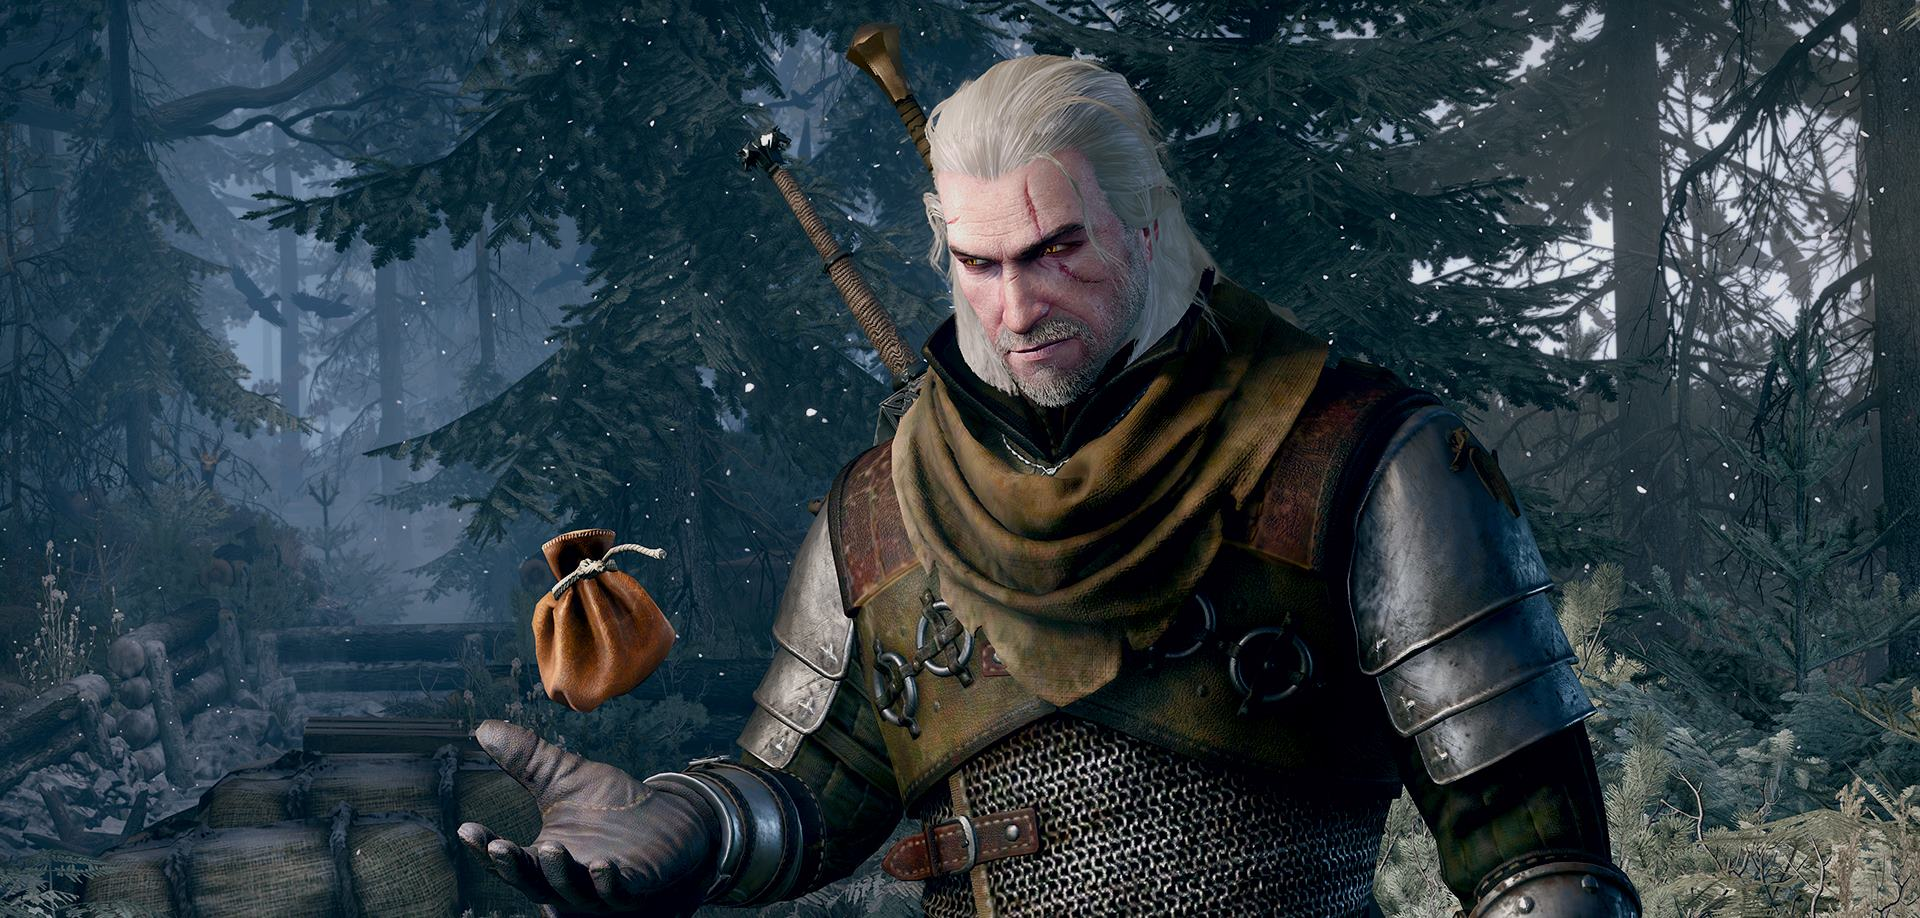 Geralt of Rivia in The Witcher 3: Wild Hunt stands staring at a bag of coins in his hand